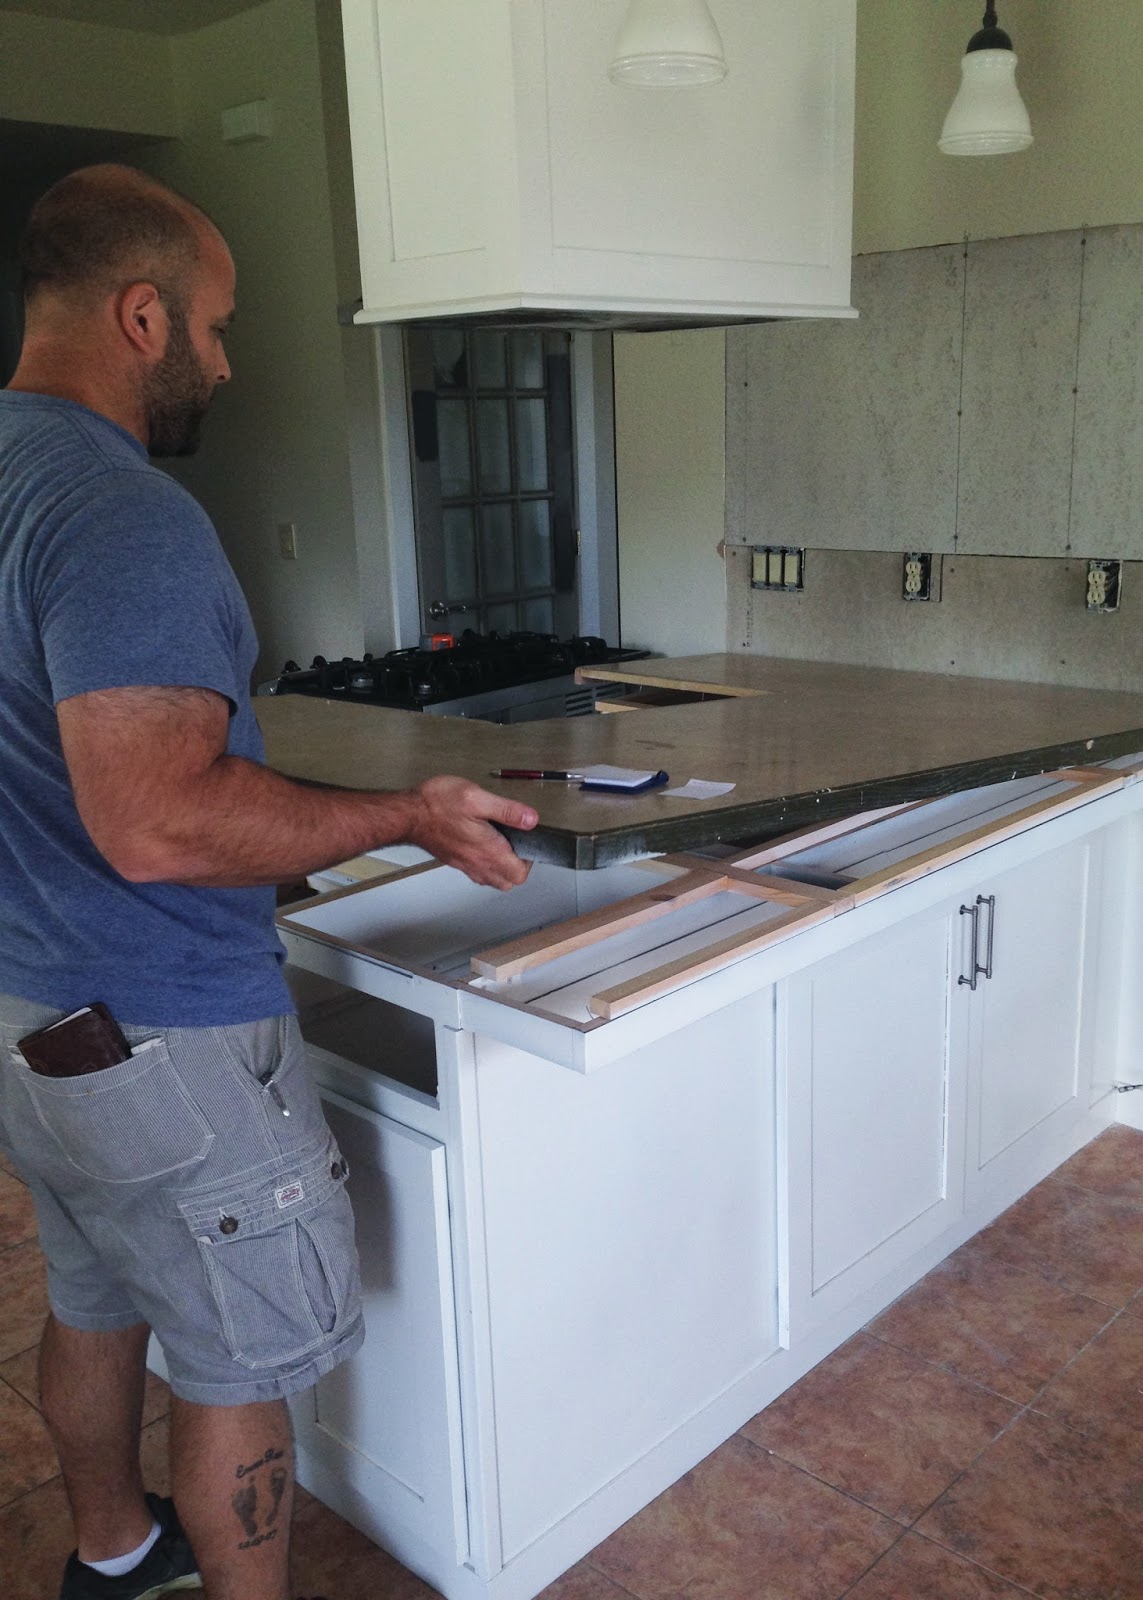 Diy Extend Kitchen Cabinets Diy Reclaimed Wood Countertop Averie Lane Diy Reclaimed